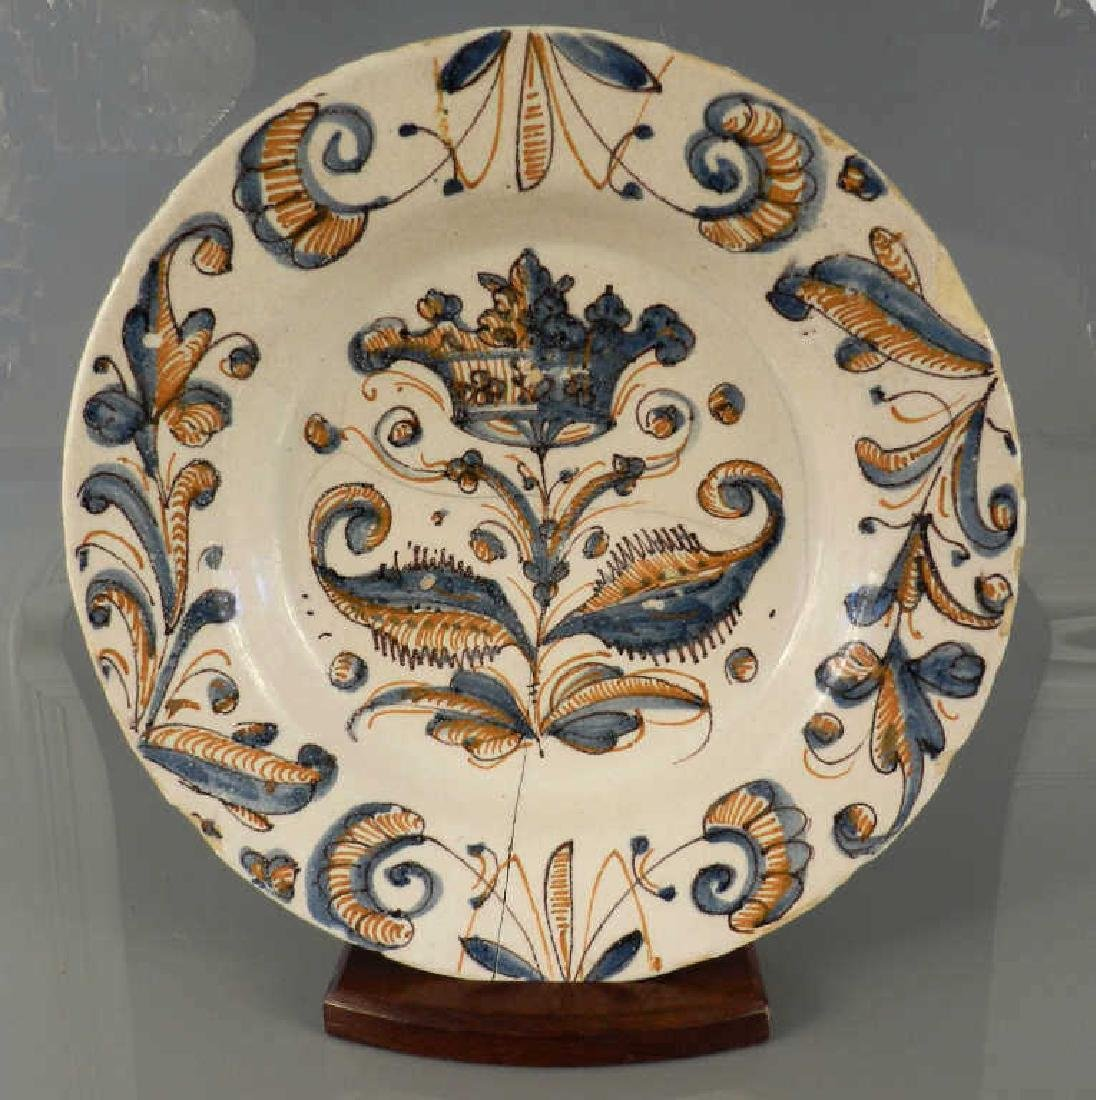 17th/18th Century Spanish Majolica Charger